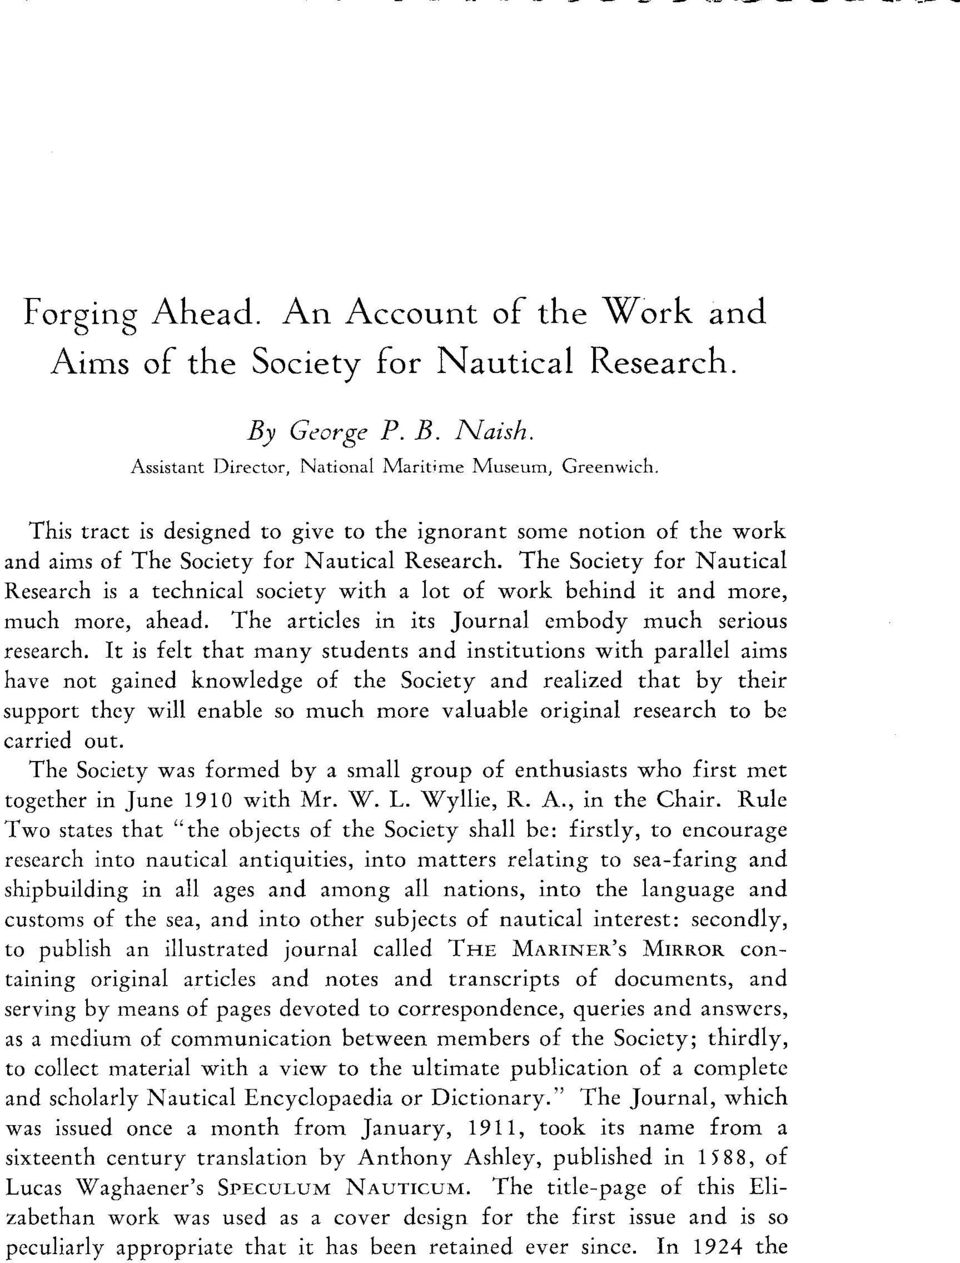 The Society for N autical Research is a technical society with a lot of work behind it and more, much more, ahead. The artides in its Journal embody much serious research.